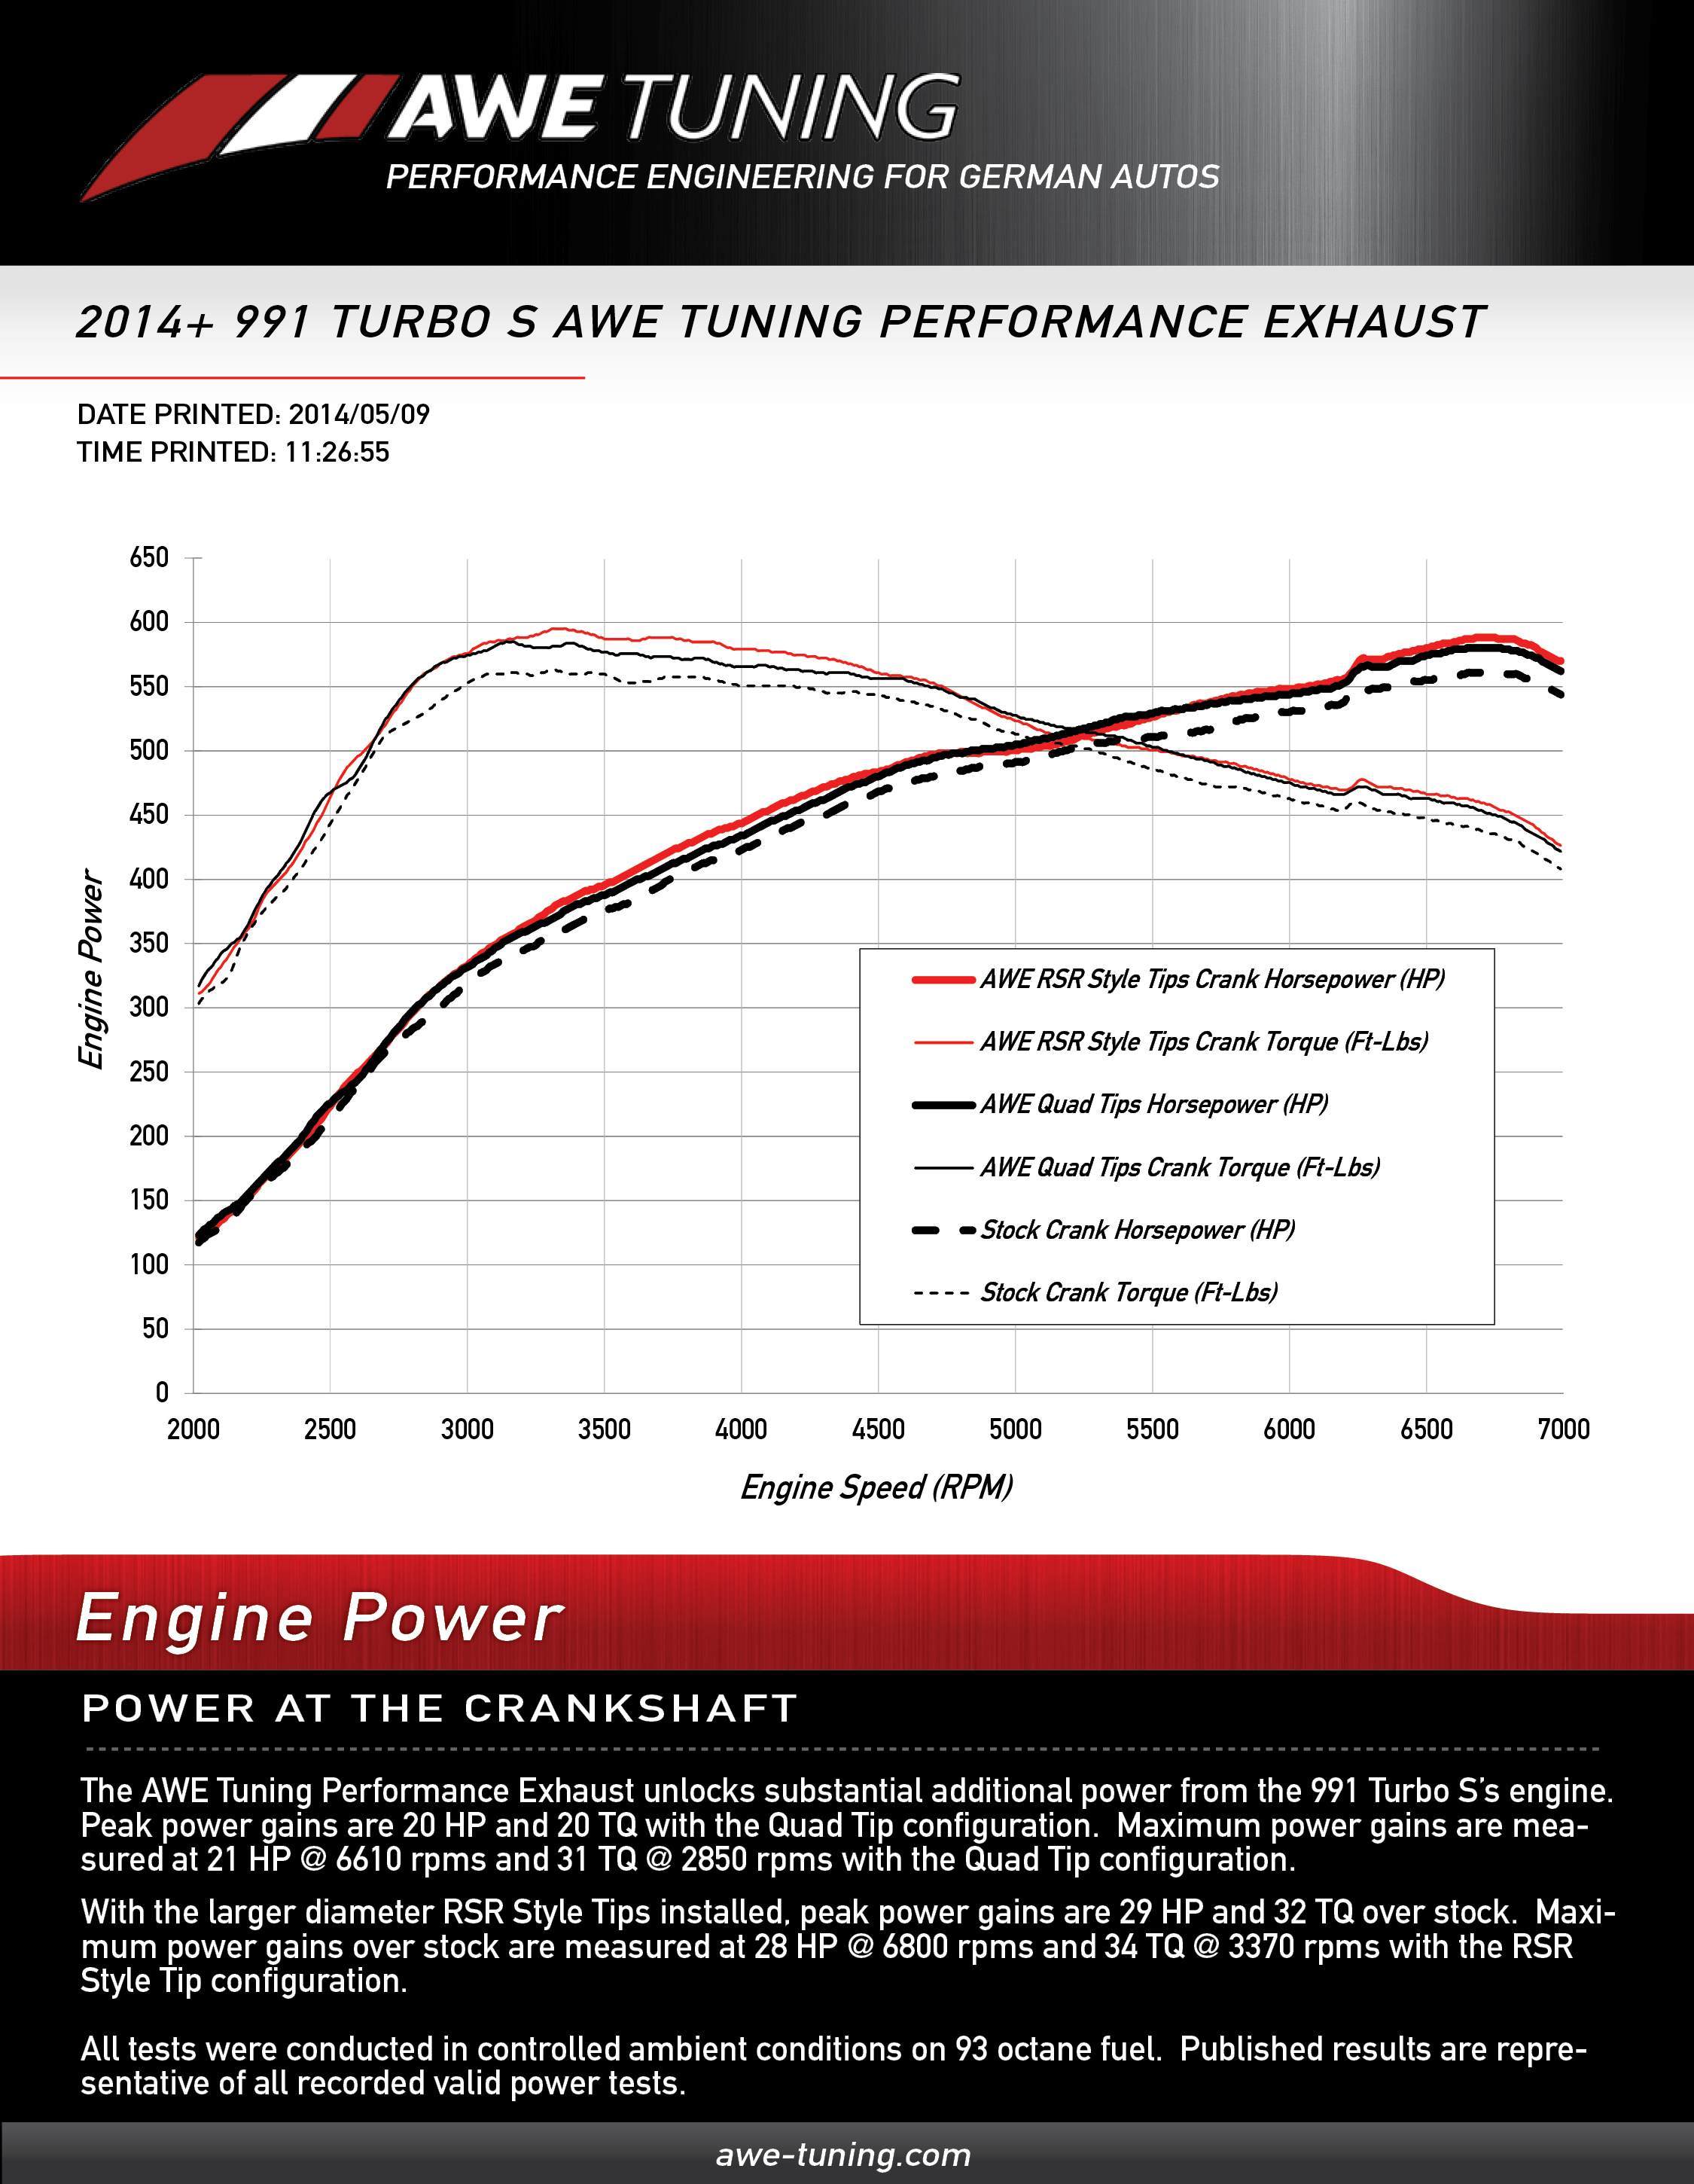 Awe Tuning Porsche 991 Turbo And S Performance Exhaust System Engine Diagram Crank Horsepower Gains For The